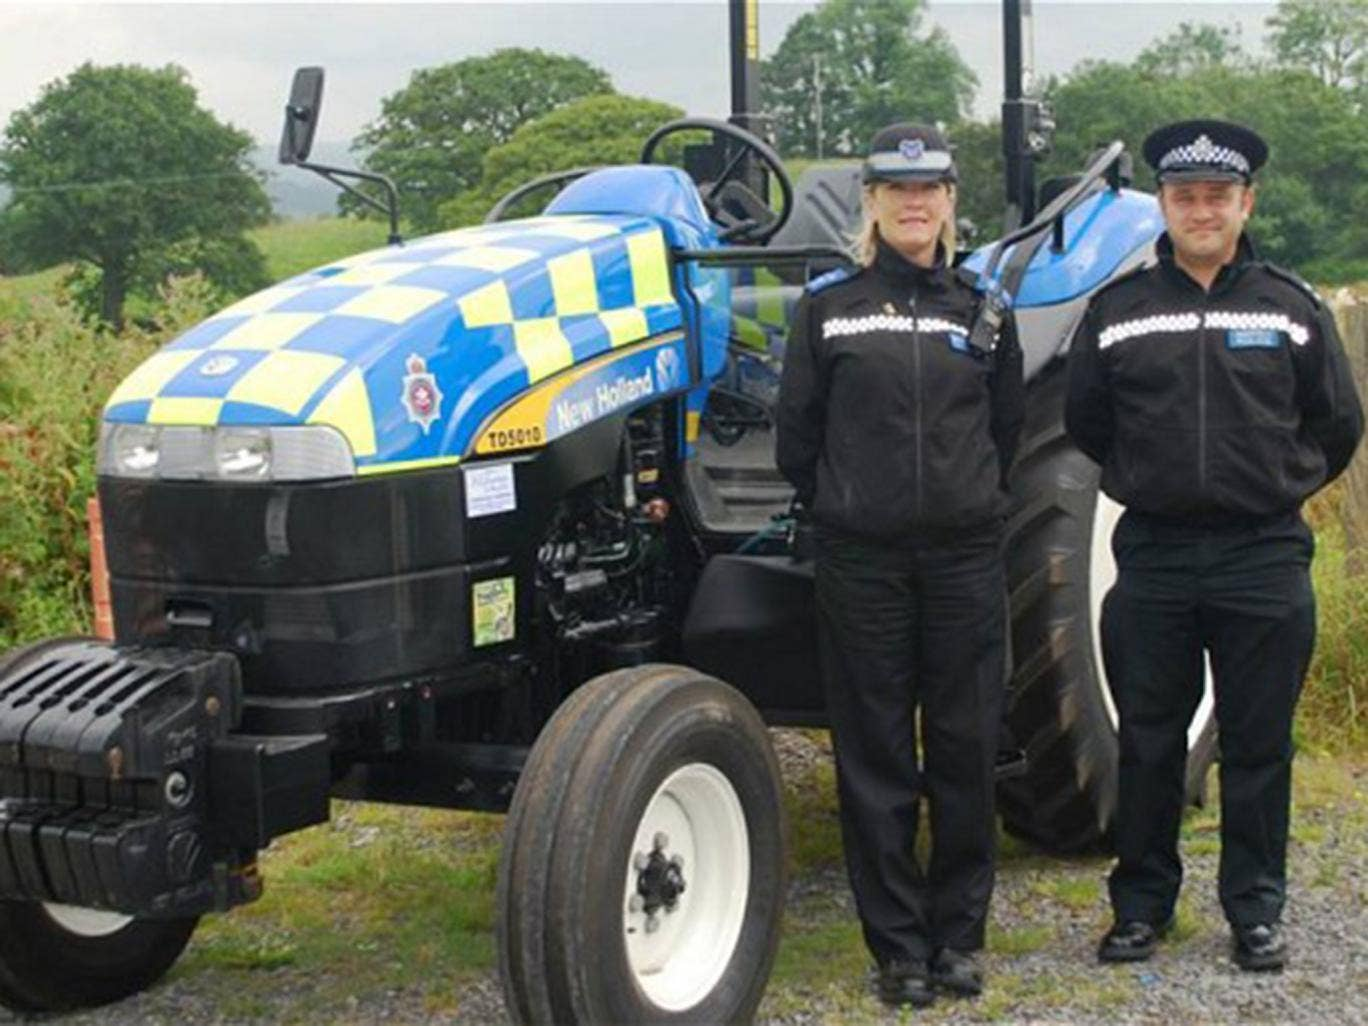 The new police tractor unveiled by Dyfed-Powys Police